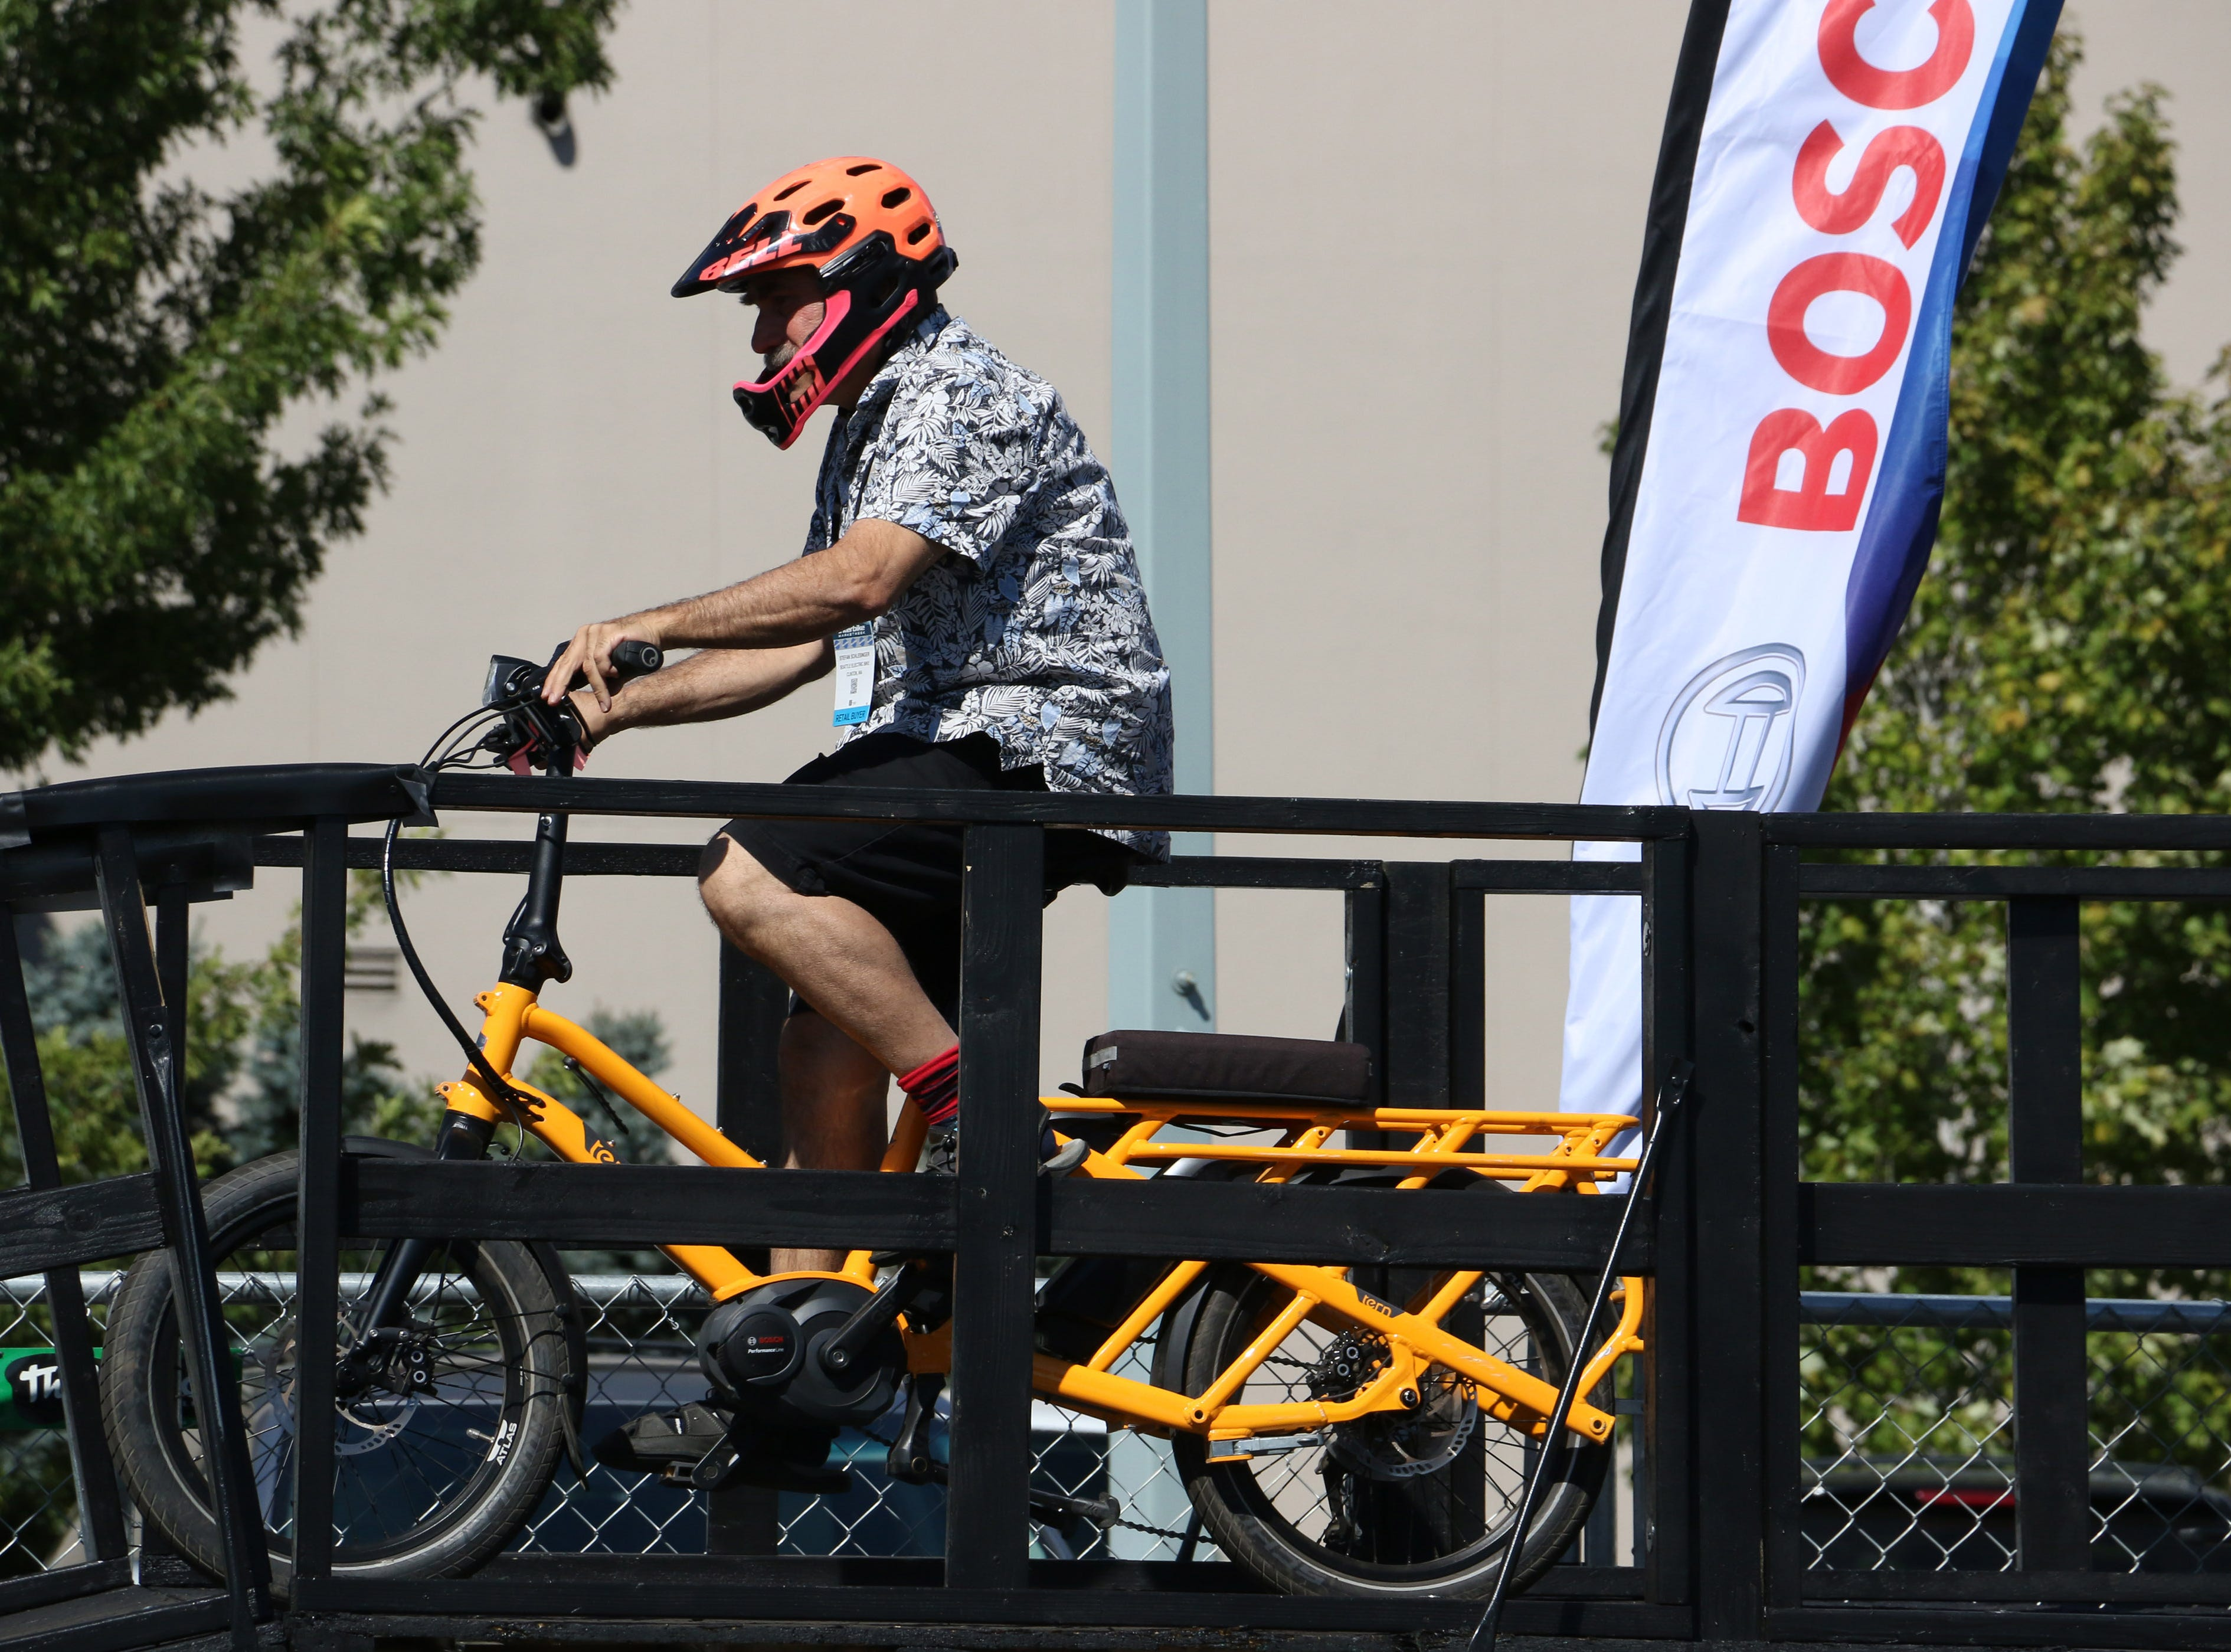 A person demos an e-bike at the Interbike Expo at the Reno-Sparks Convention Center in Reno on Sept. 19, 2018.